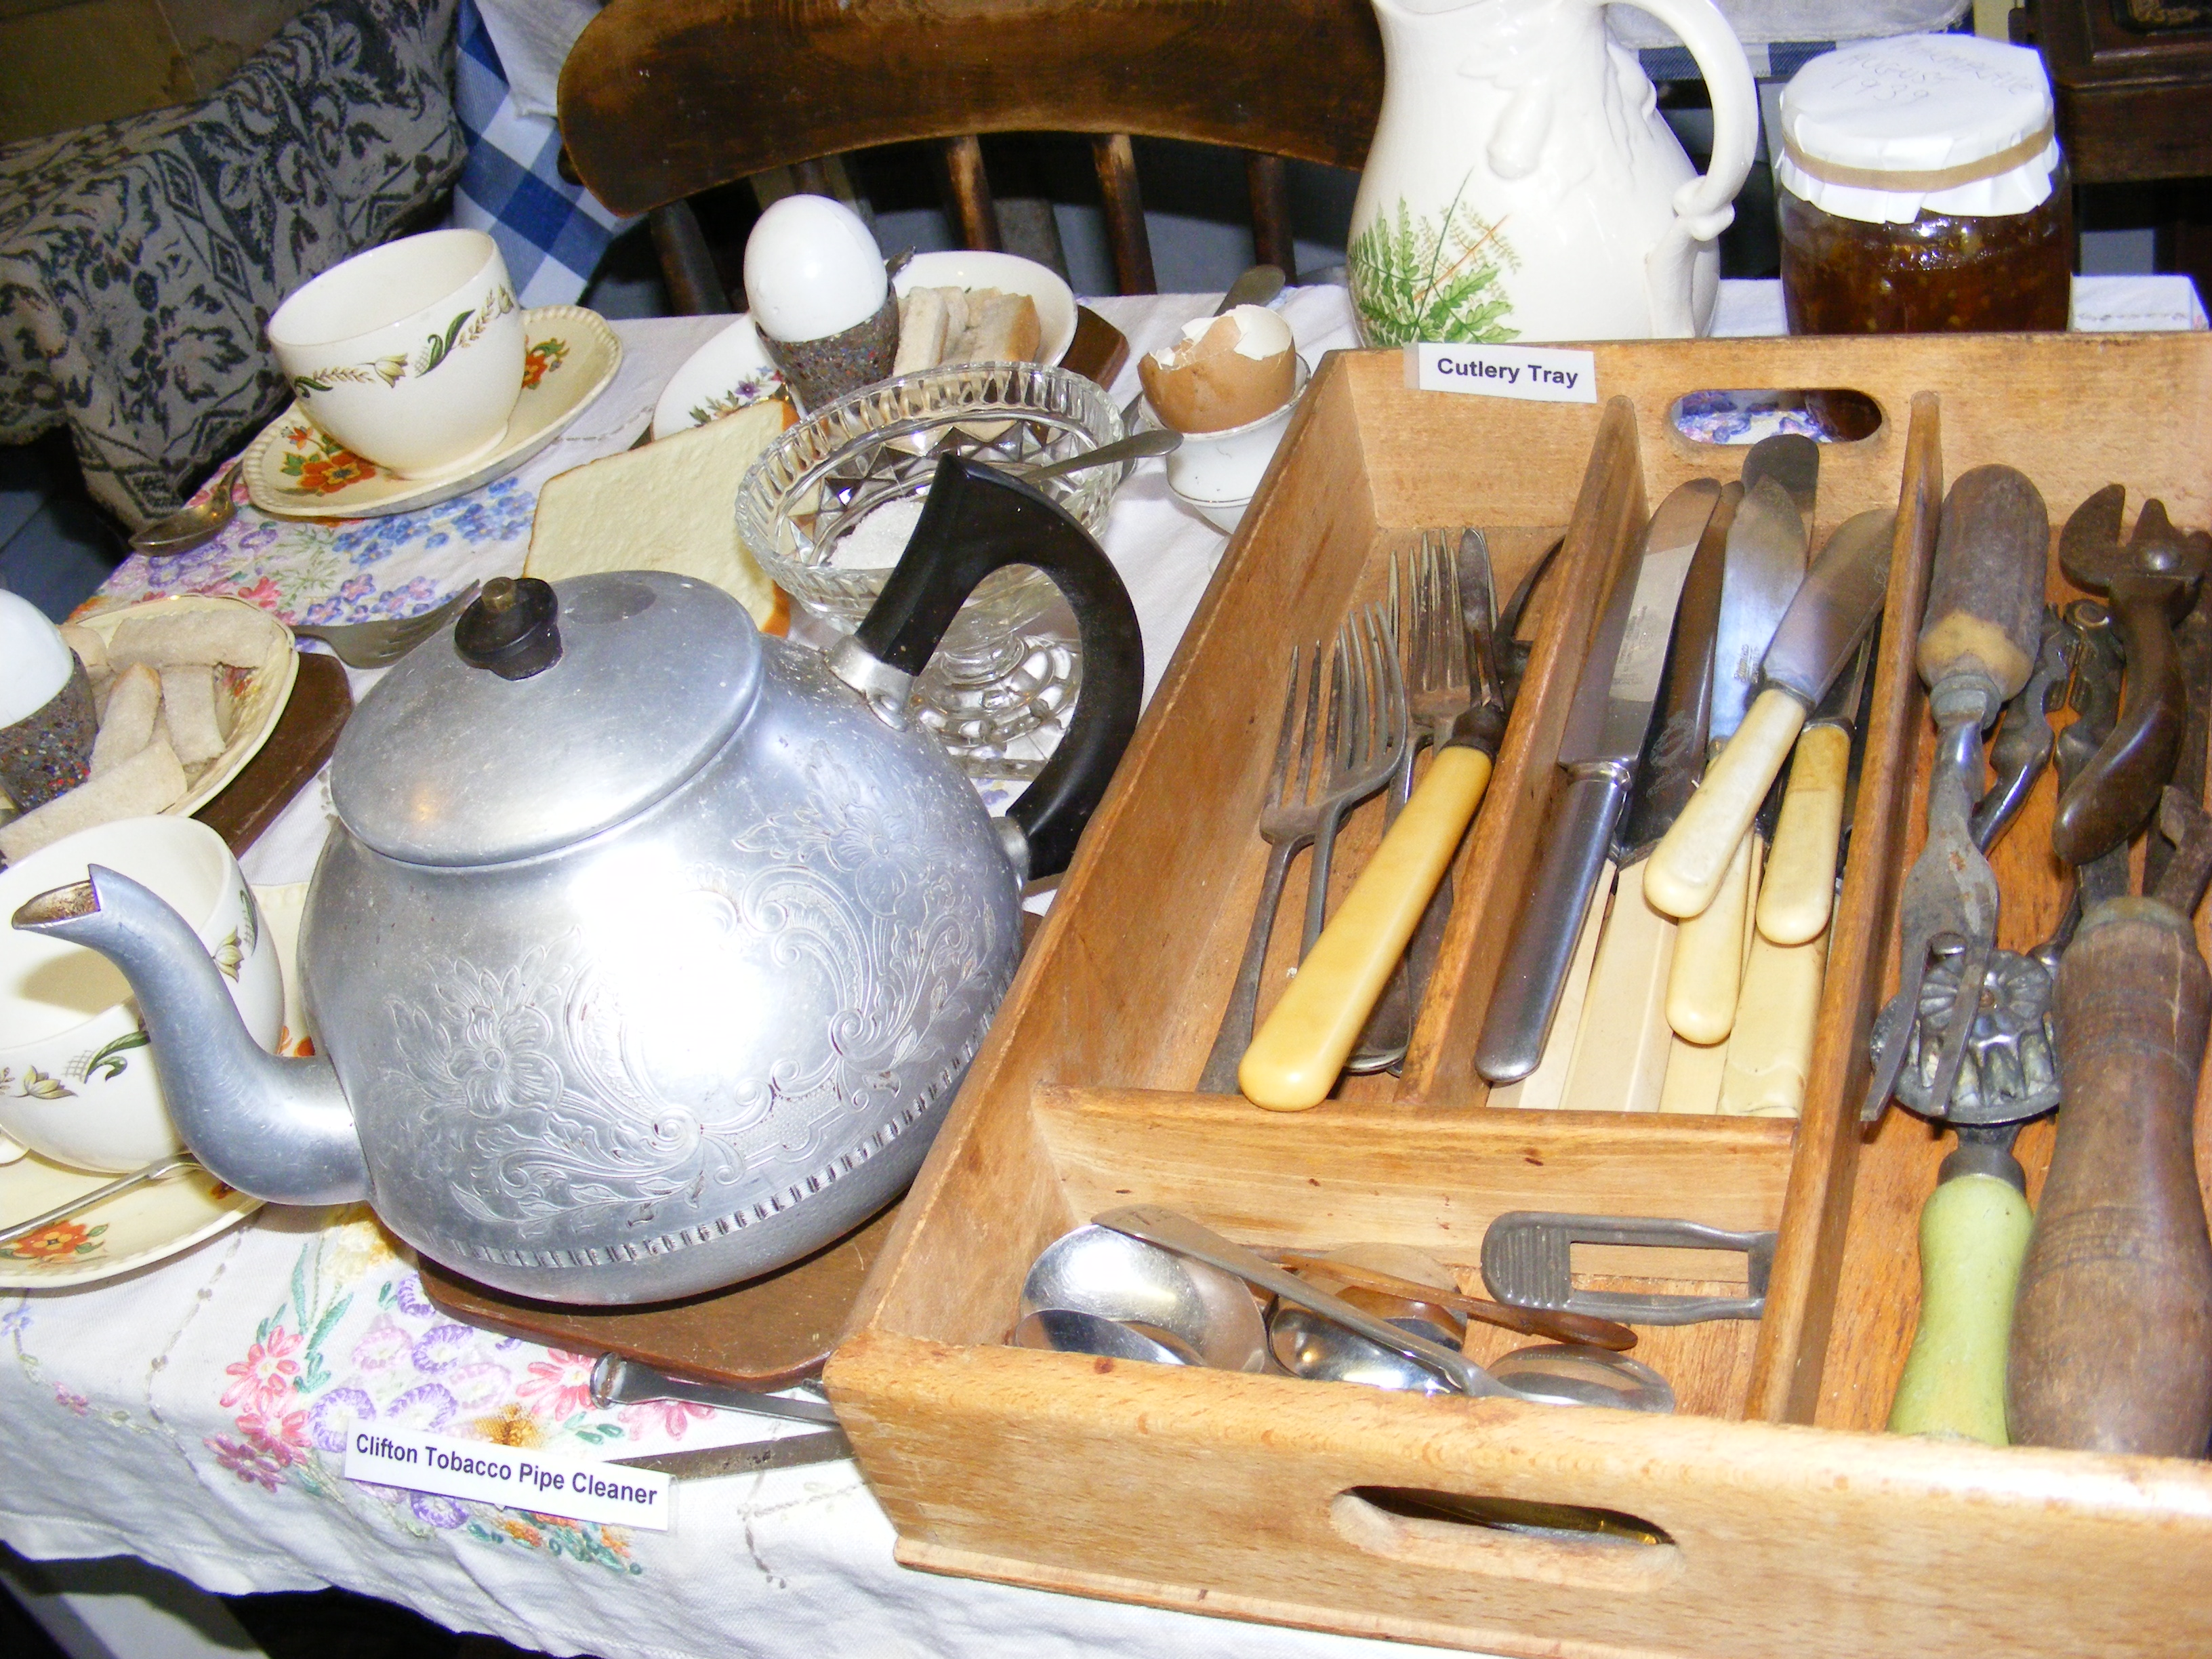 At the museum there is a World War 2 homelife display. It shows many items from the Second World War.